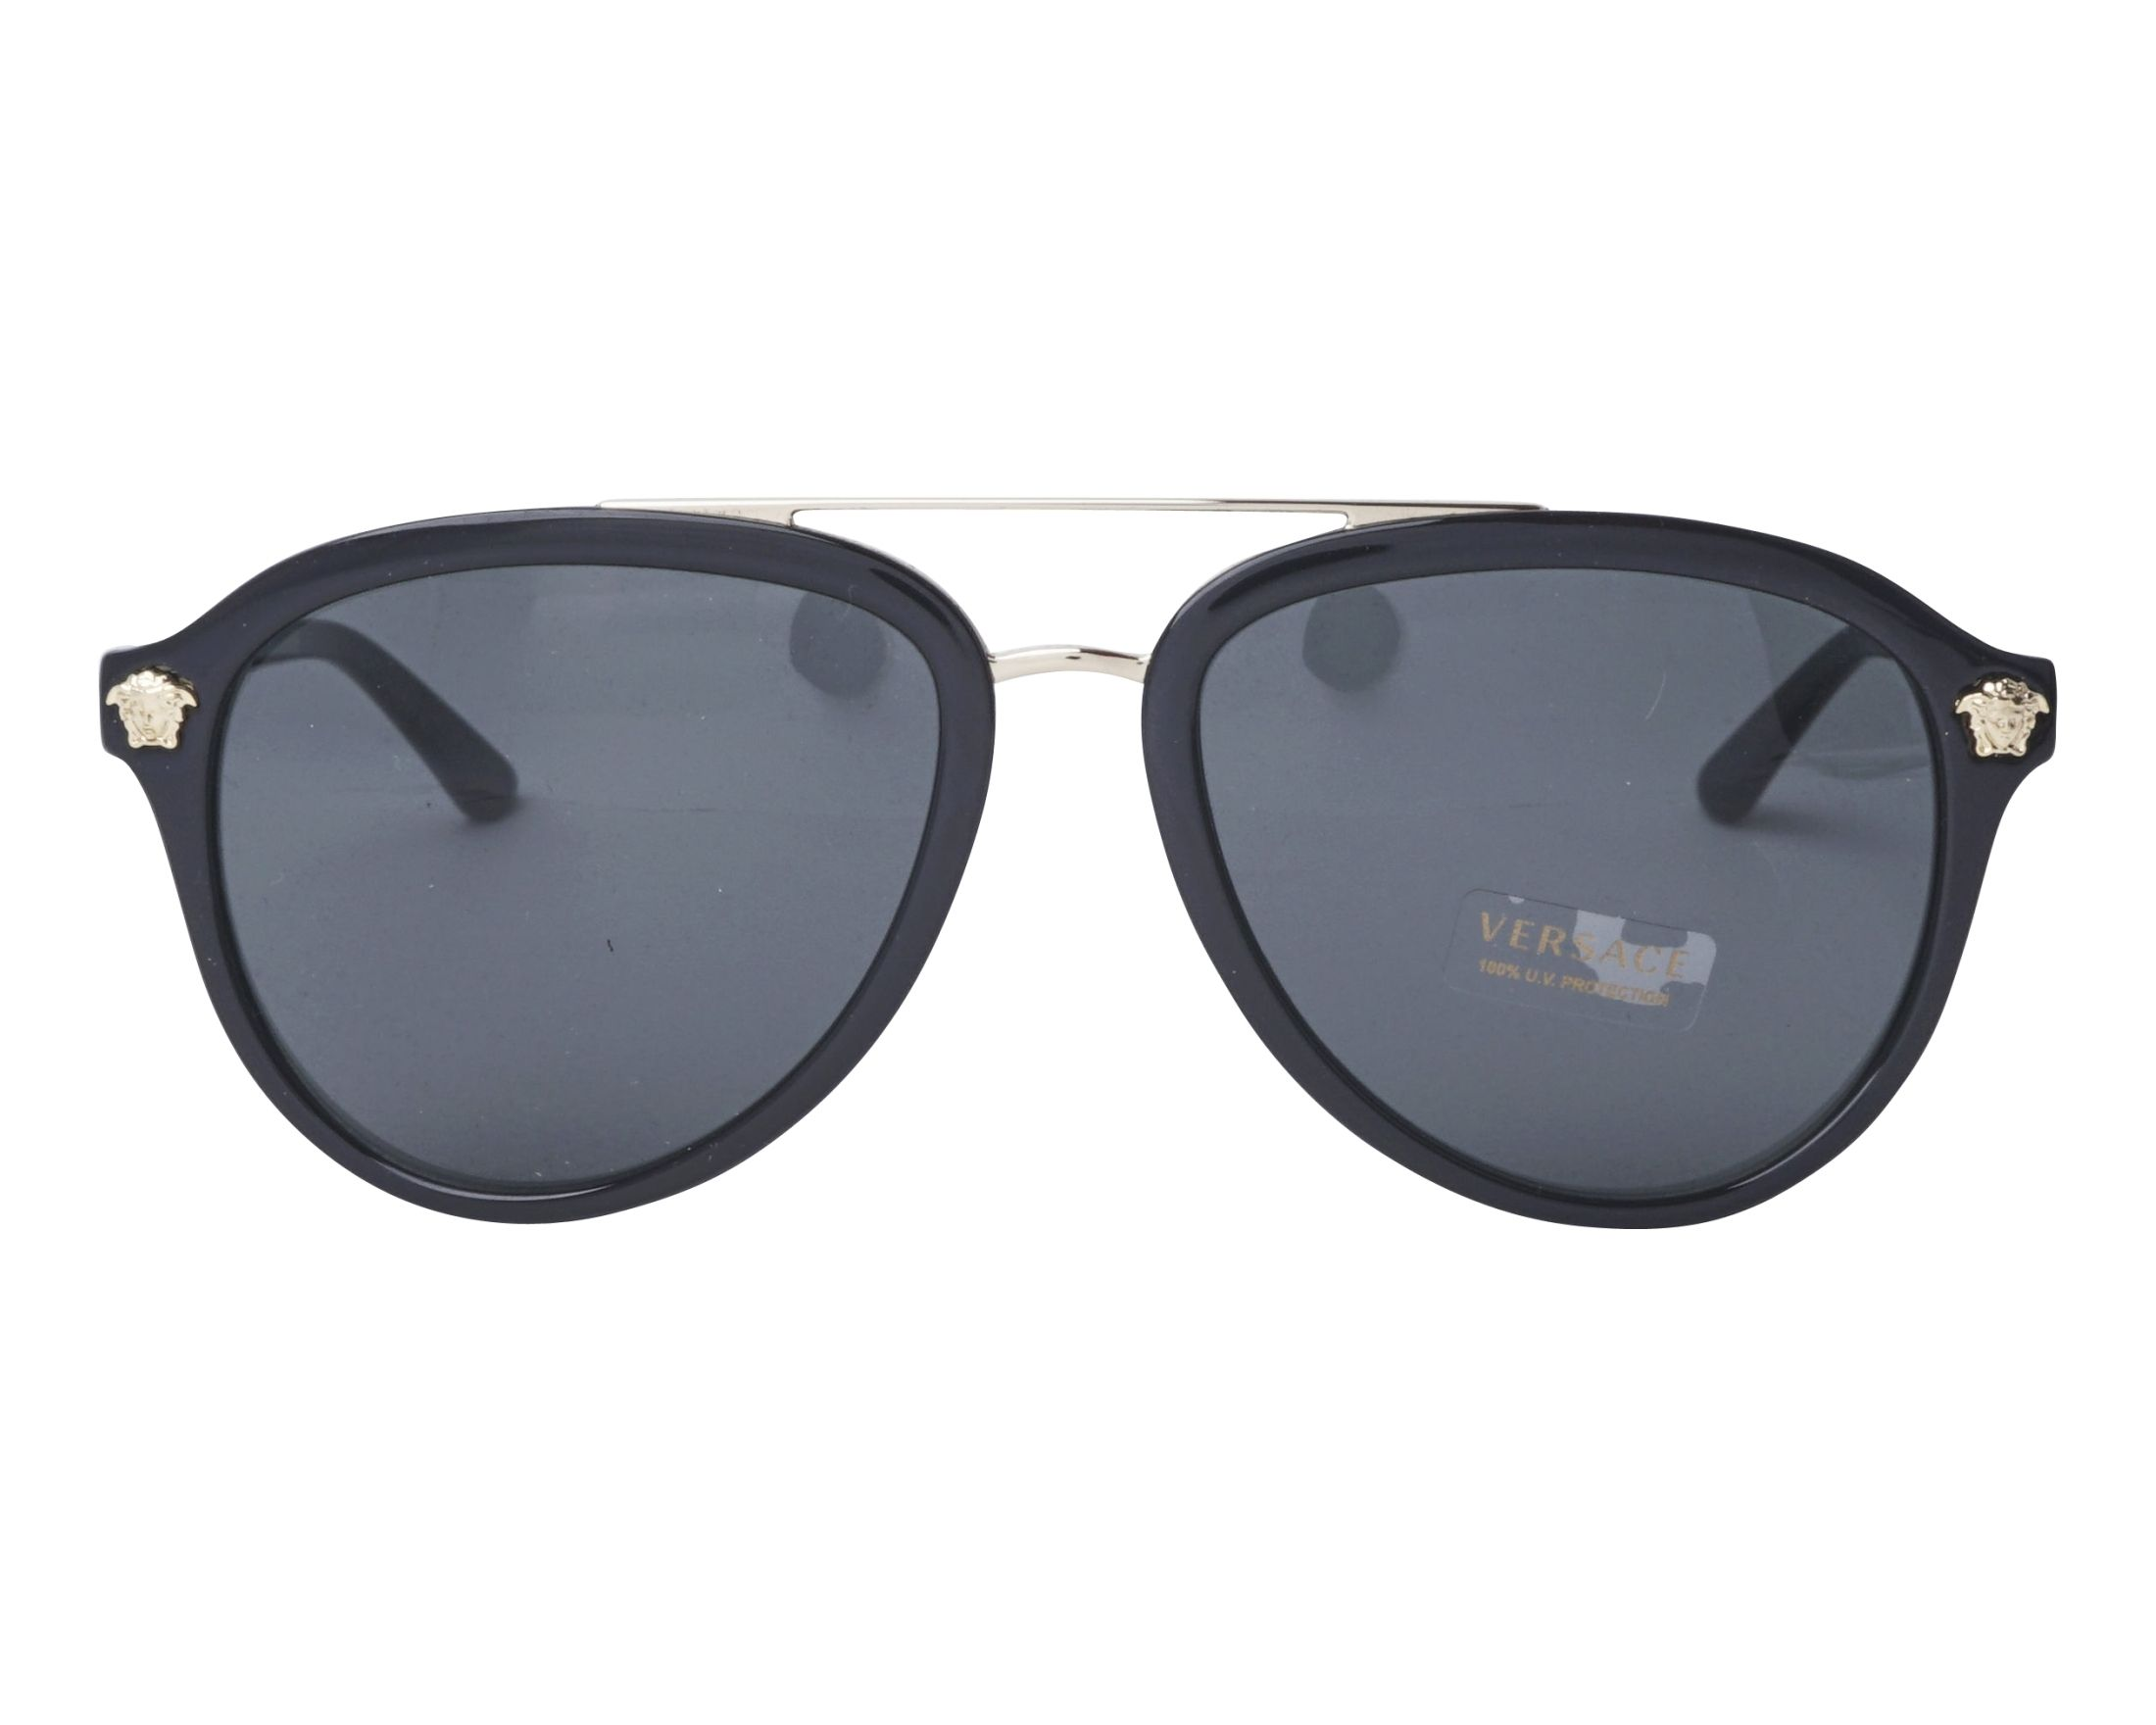 fcb441aa1f8 Sunglasses Versace VE-4341 GB1 87 58-18 Black Gold front view